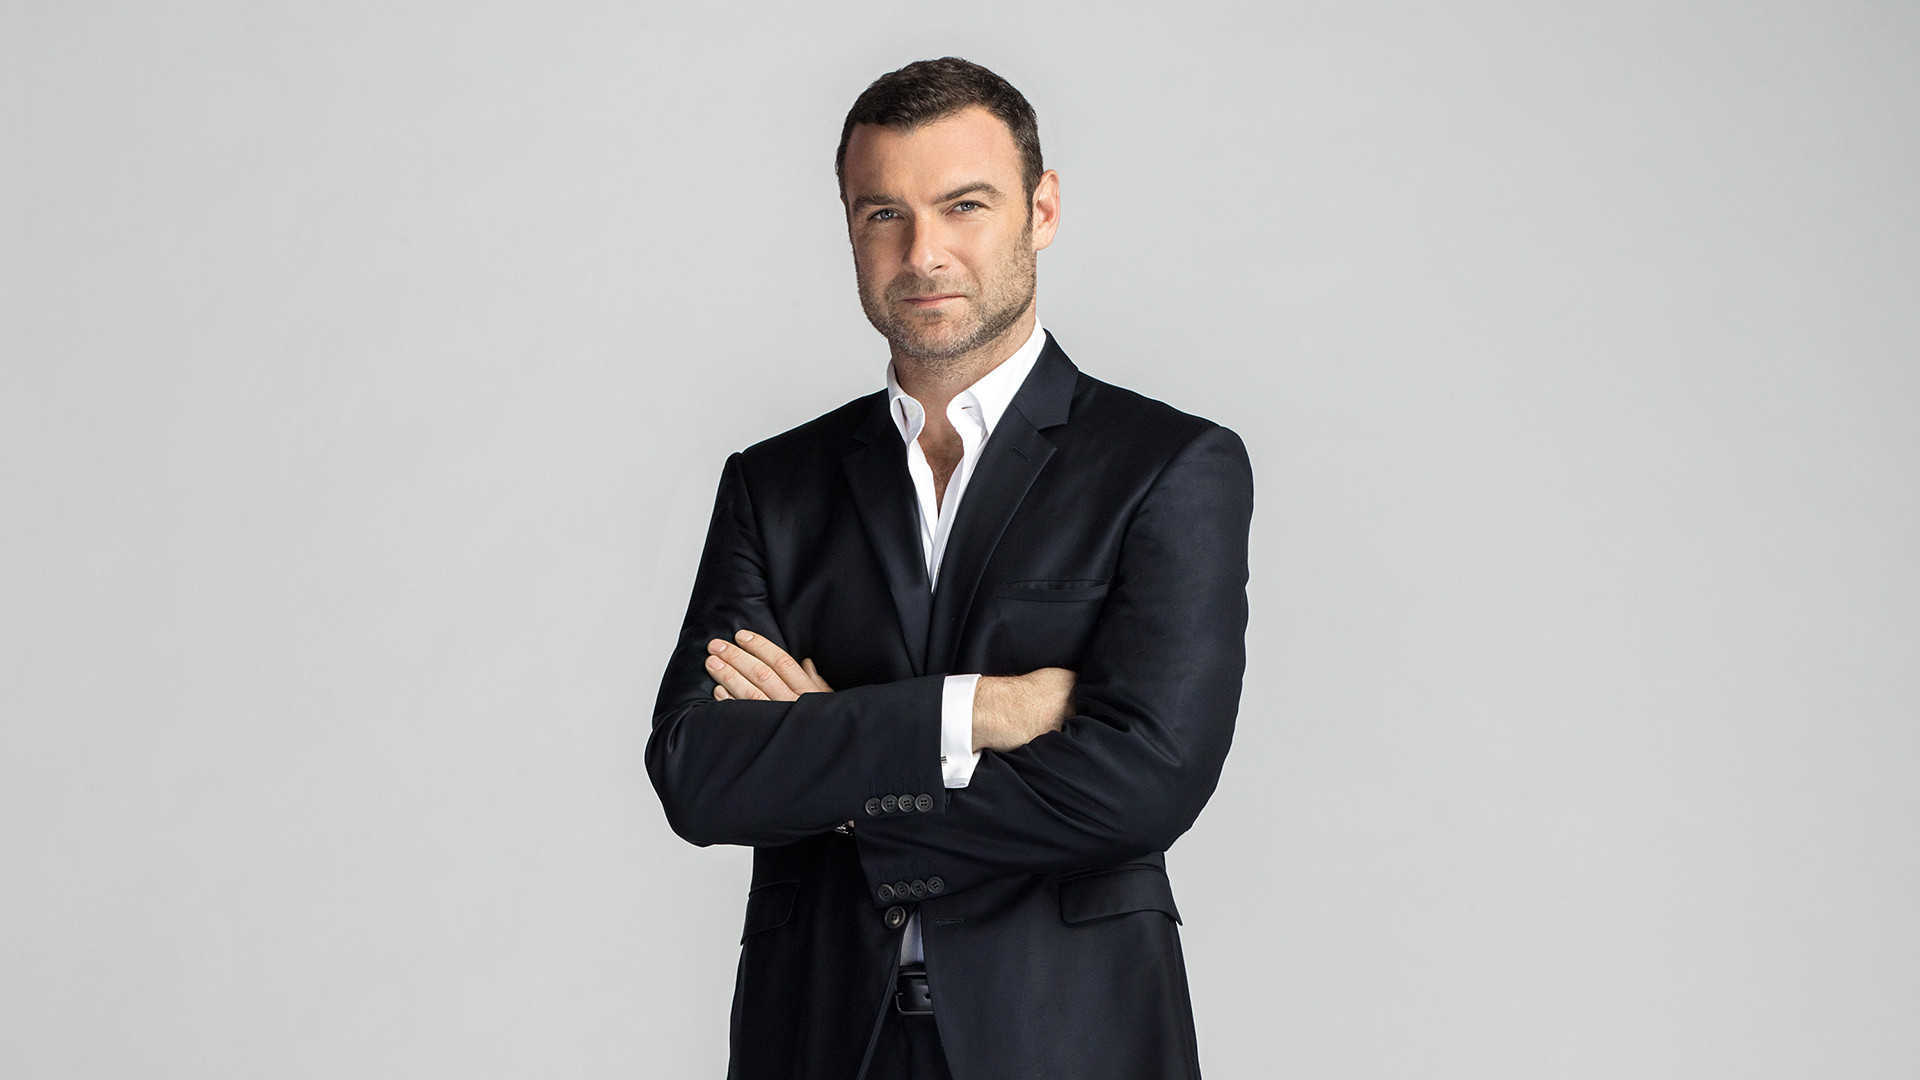 Good Quality Liev SchreibeR HD Wallpaper Wallpaper